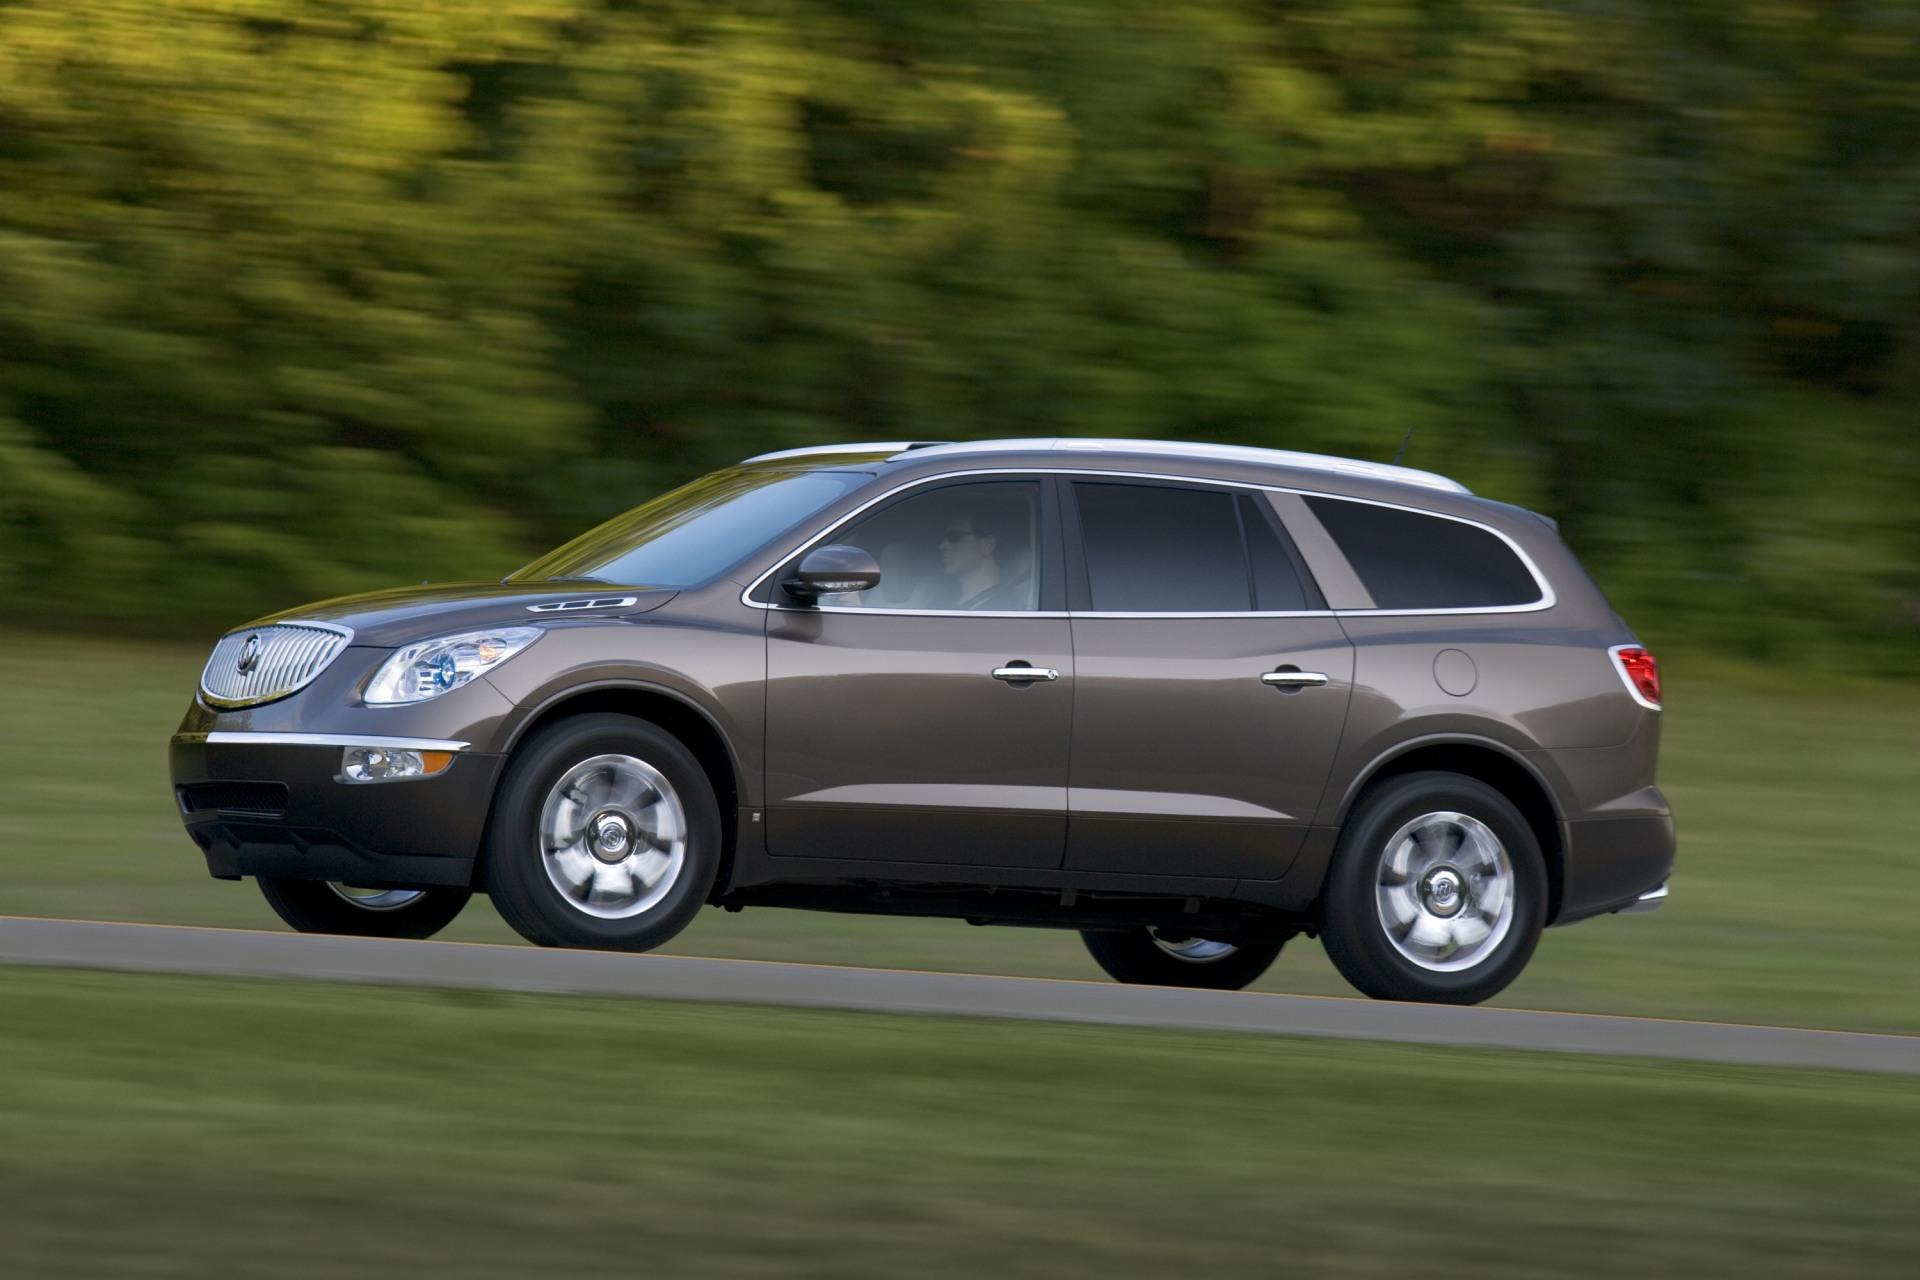 2010 Buick Enclave News And Information | Conceptcarz Can A 2021 Buick Enclave Be Flat Towed